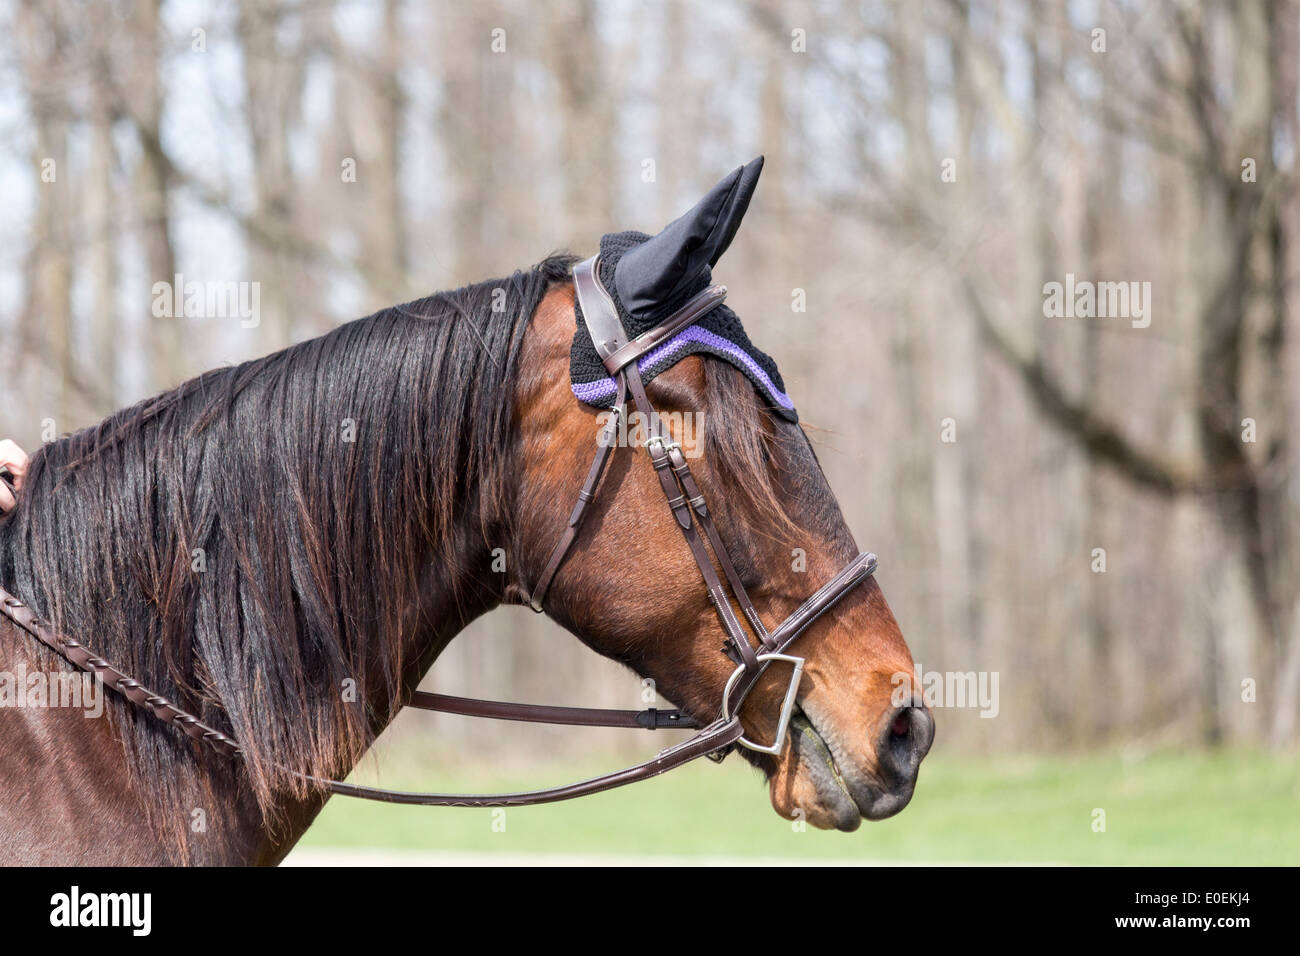 Bay horse head wearing english snaffle bridle with D-bit and ear protectors. - Stock Image